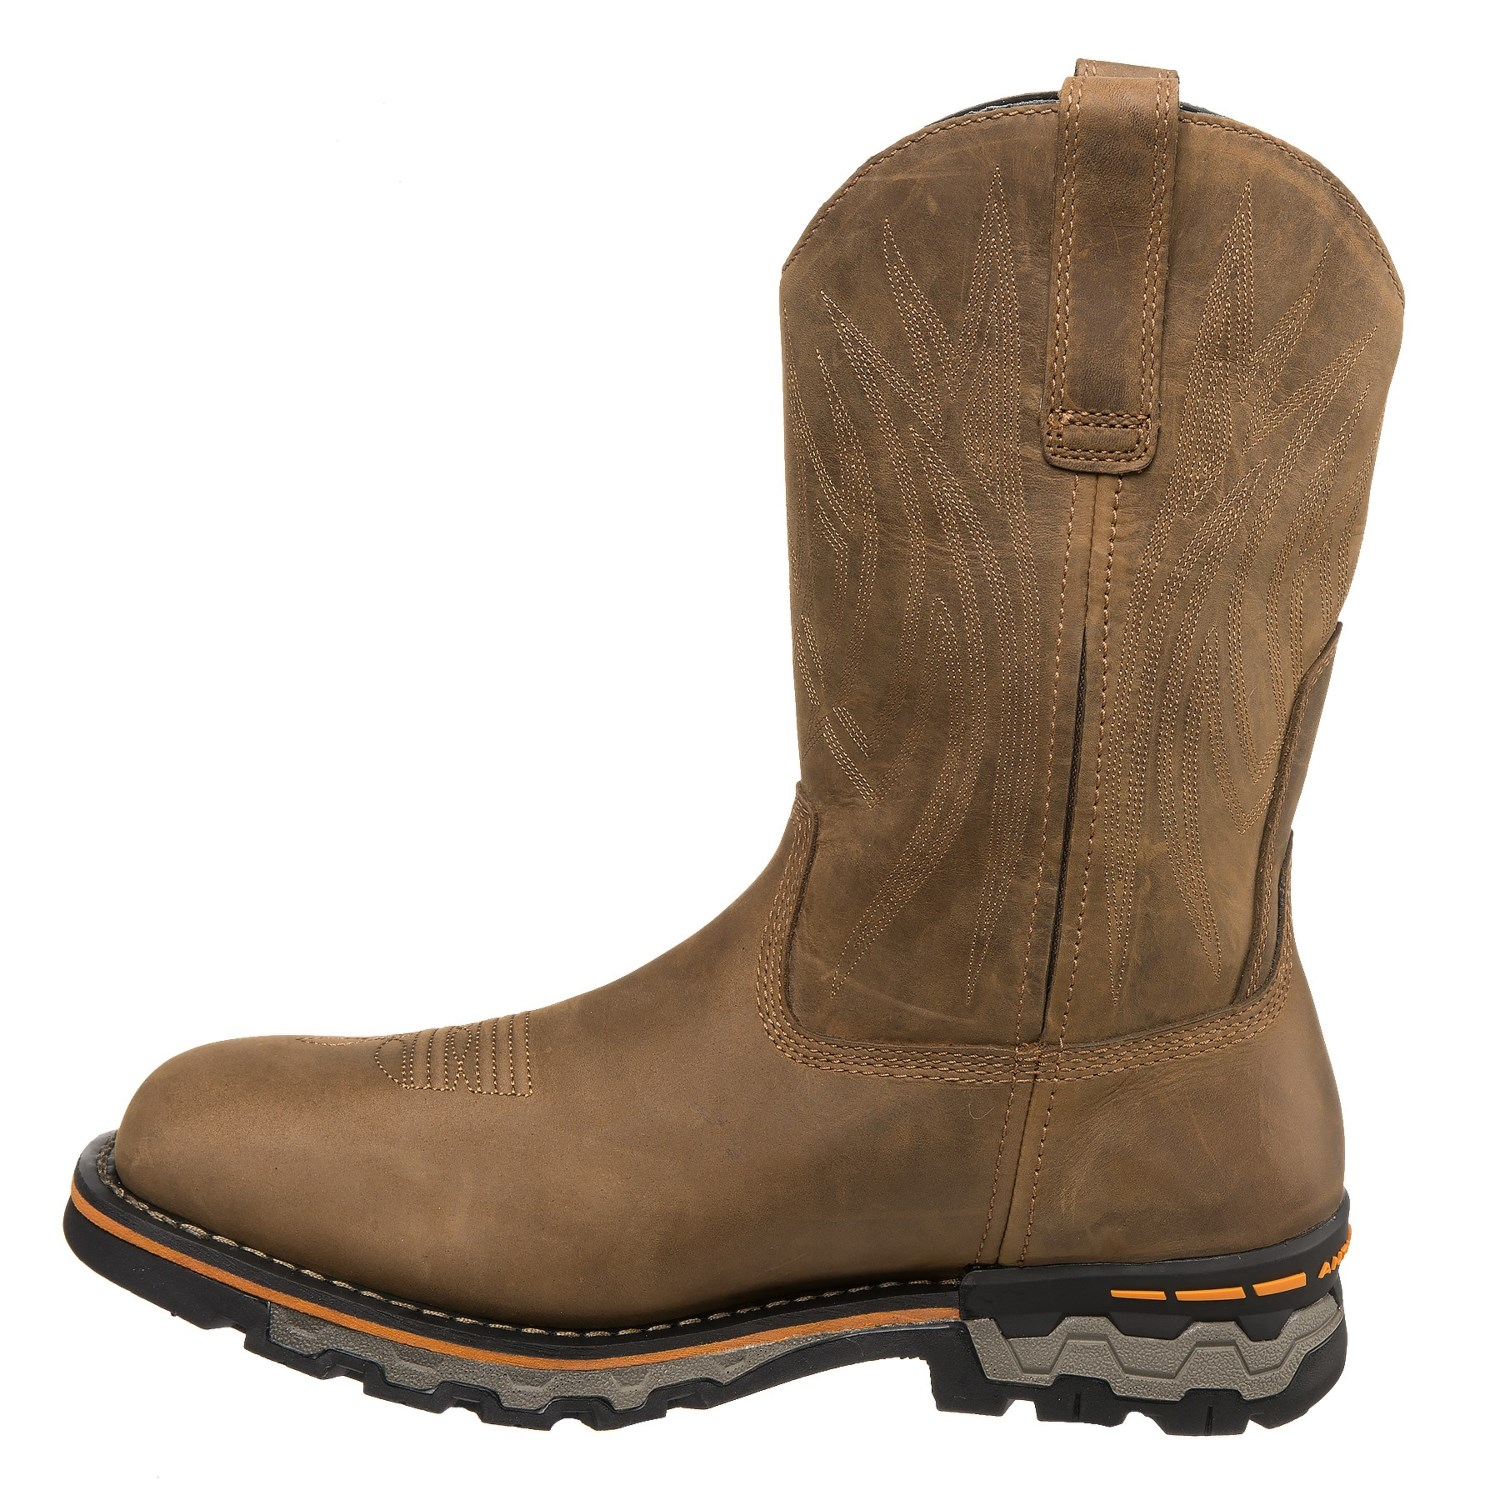 3068cf17b5f Timberland PRO AG Boss Soft Toe Work Boots - Waterproof, Square Toe (For  Men)